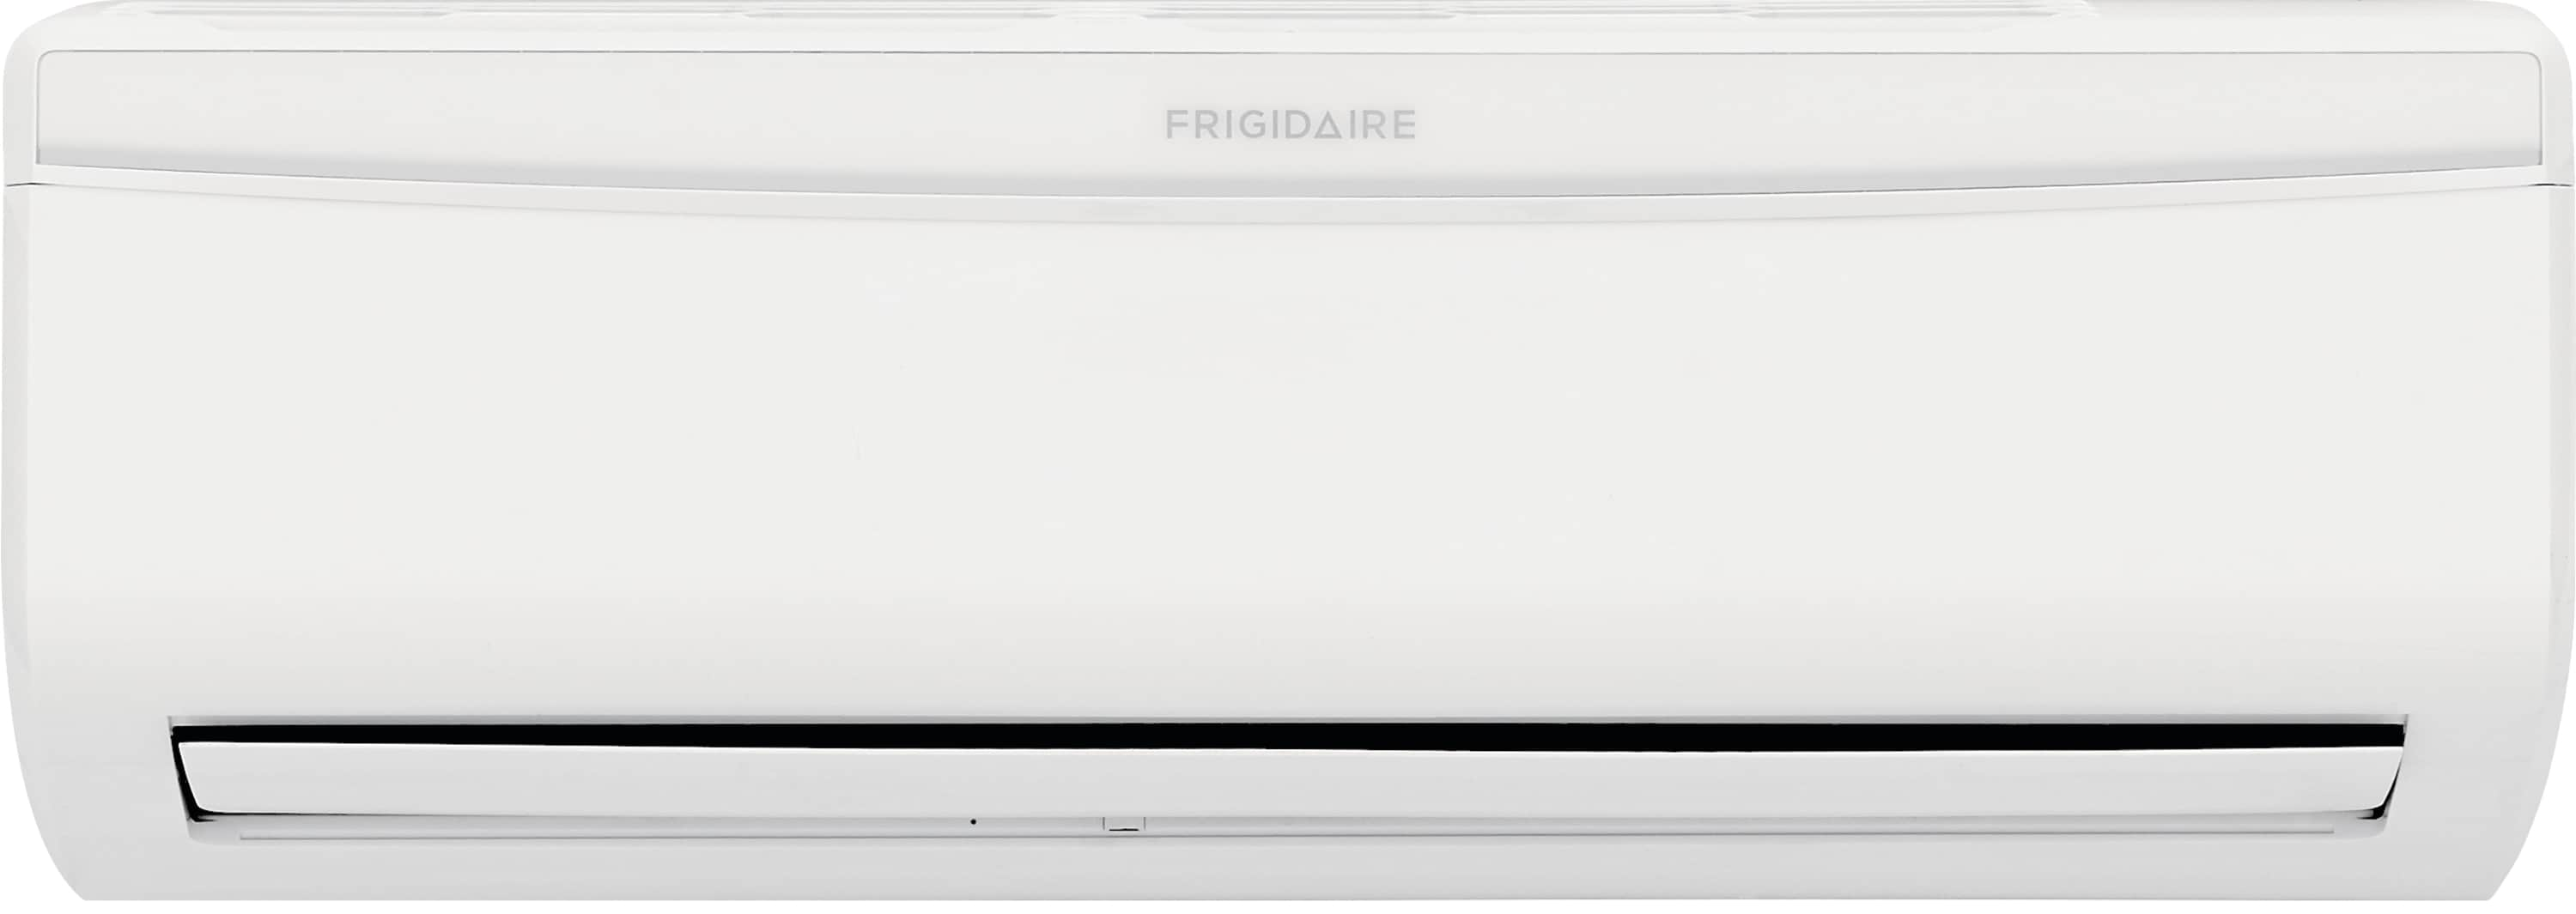 Ductless Split Air Conditioner Cool and Heat- 12,000 BTU, Heat Pump- 115V- Indoor unit